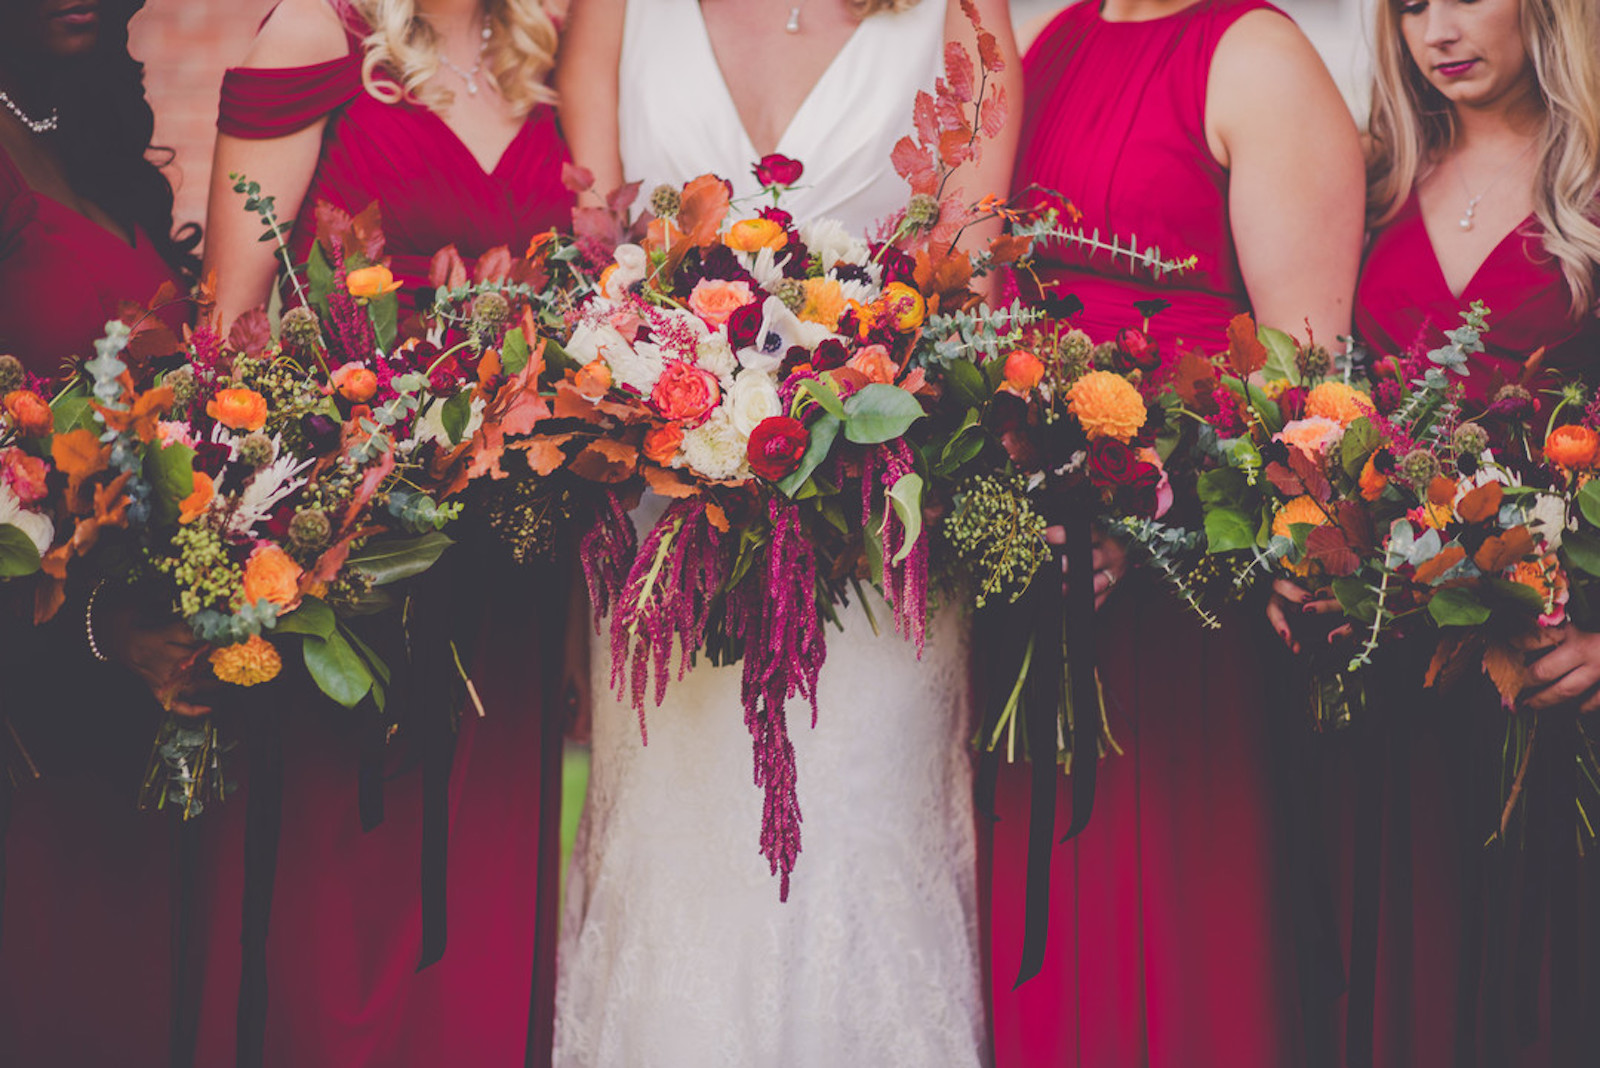 bride and bridesmaids from the neck down in fuchsia pink dresses holding bouquets of orange and pink flowers